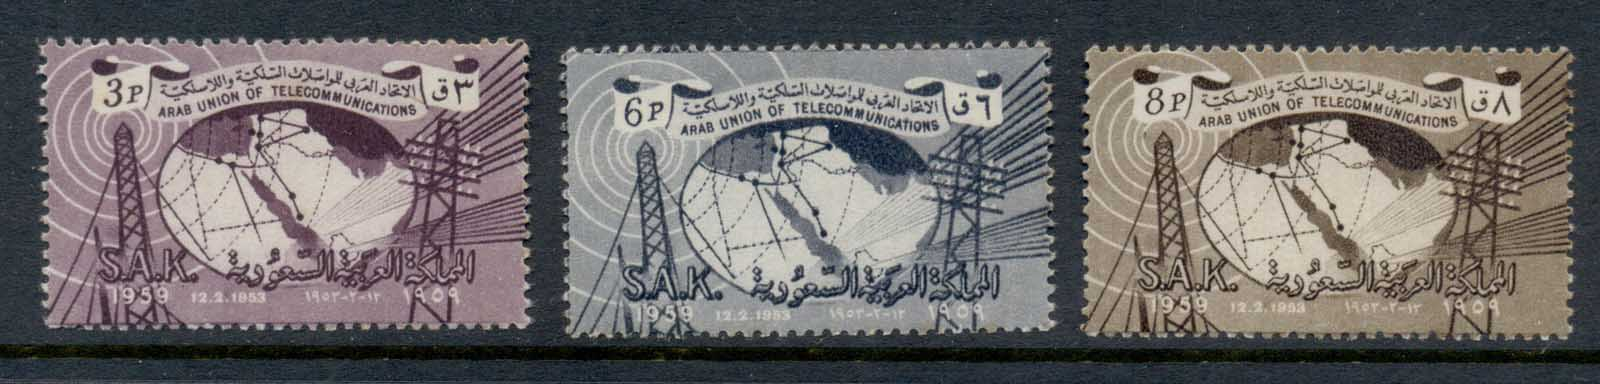 Saudi Arabia 1961 Arab Union of Telecommunications (toned) MLH